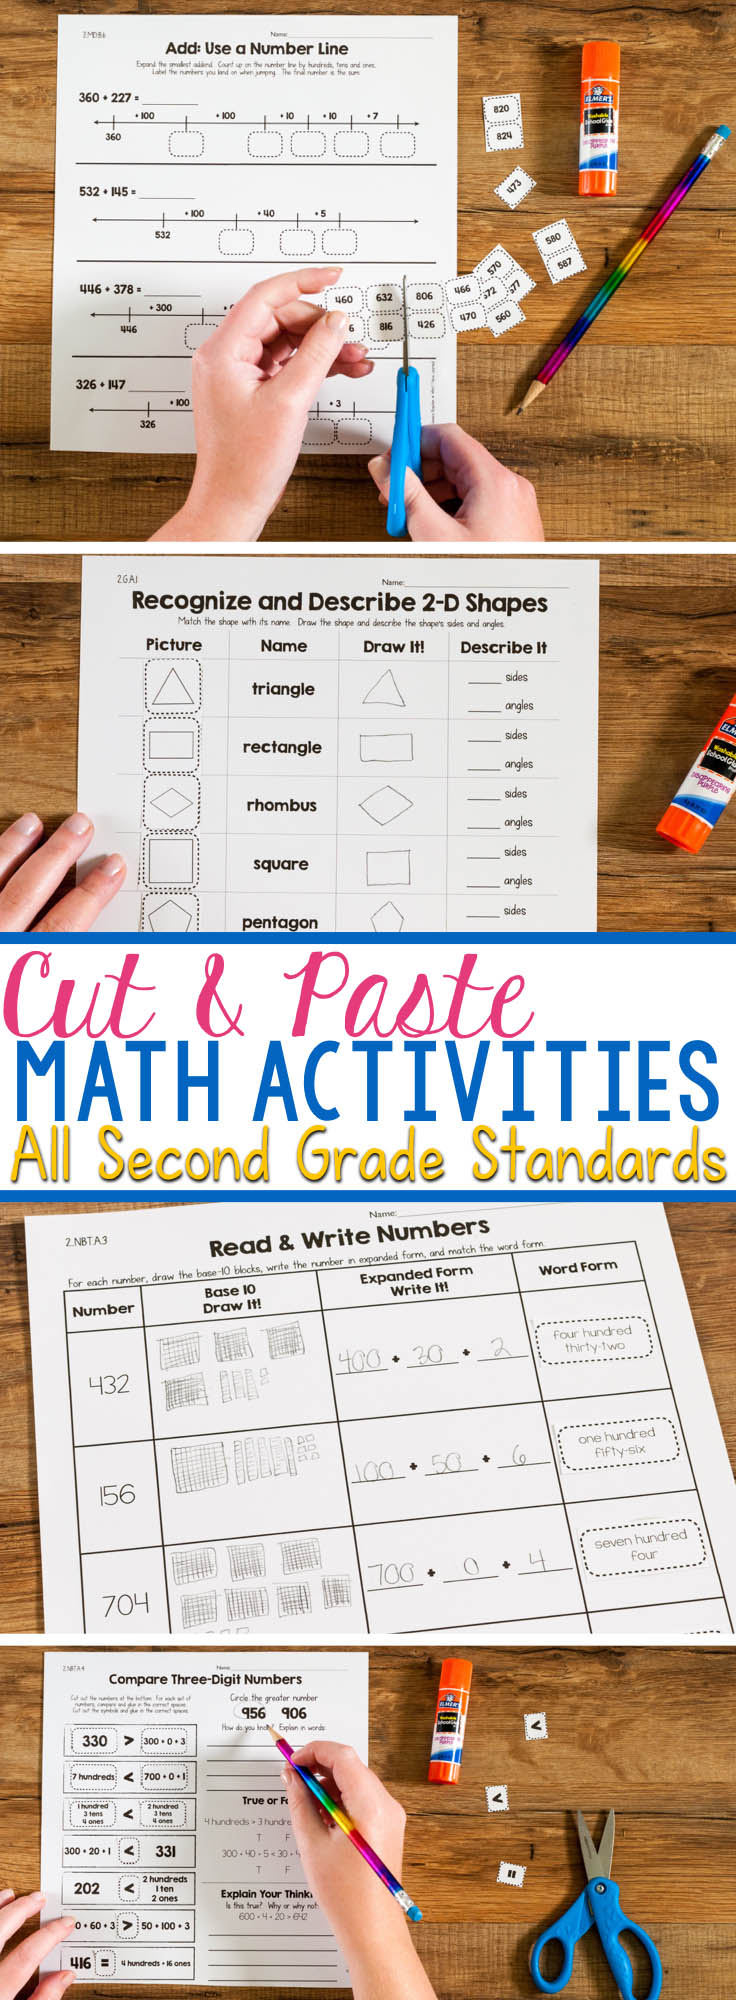 Uncategorized Math Cut And Paste Worksheets cut paste math activities for every second grade standard and are more than just a worksheet these